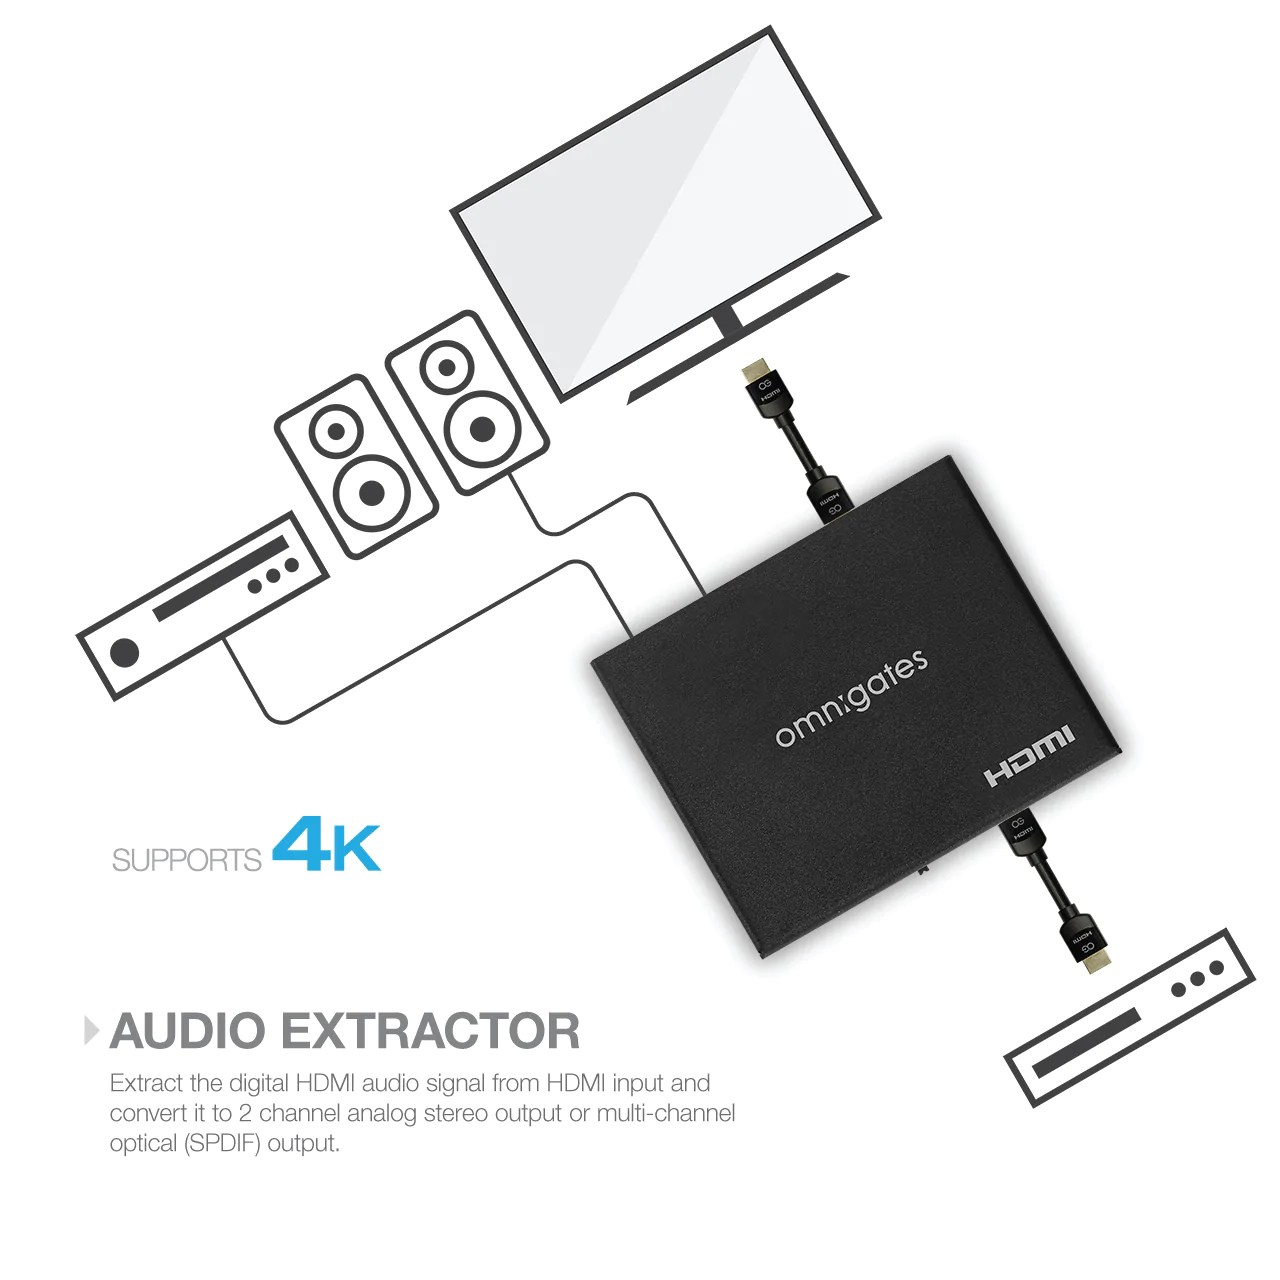 small resolution of  hdmi 18gbps audio extractor with hdcp 2 2 applications